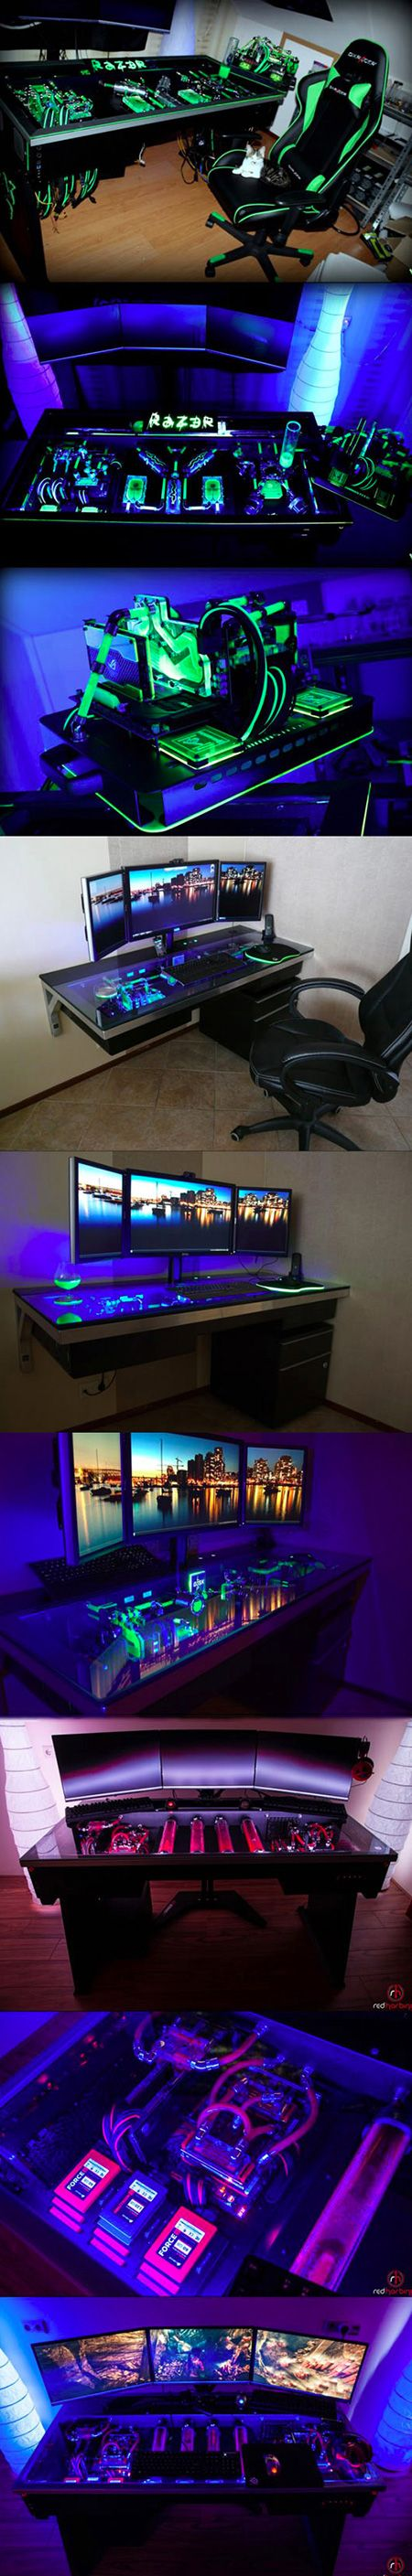 You can either buy a desktop computer, or have one built directly into a desk.